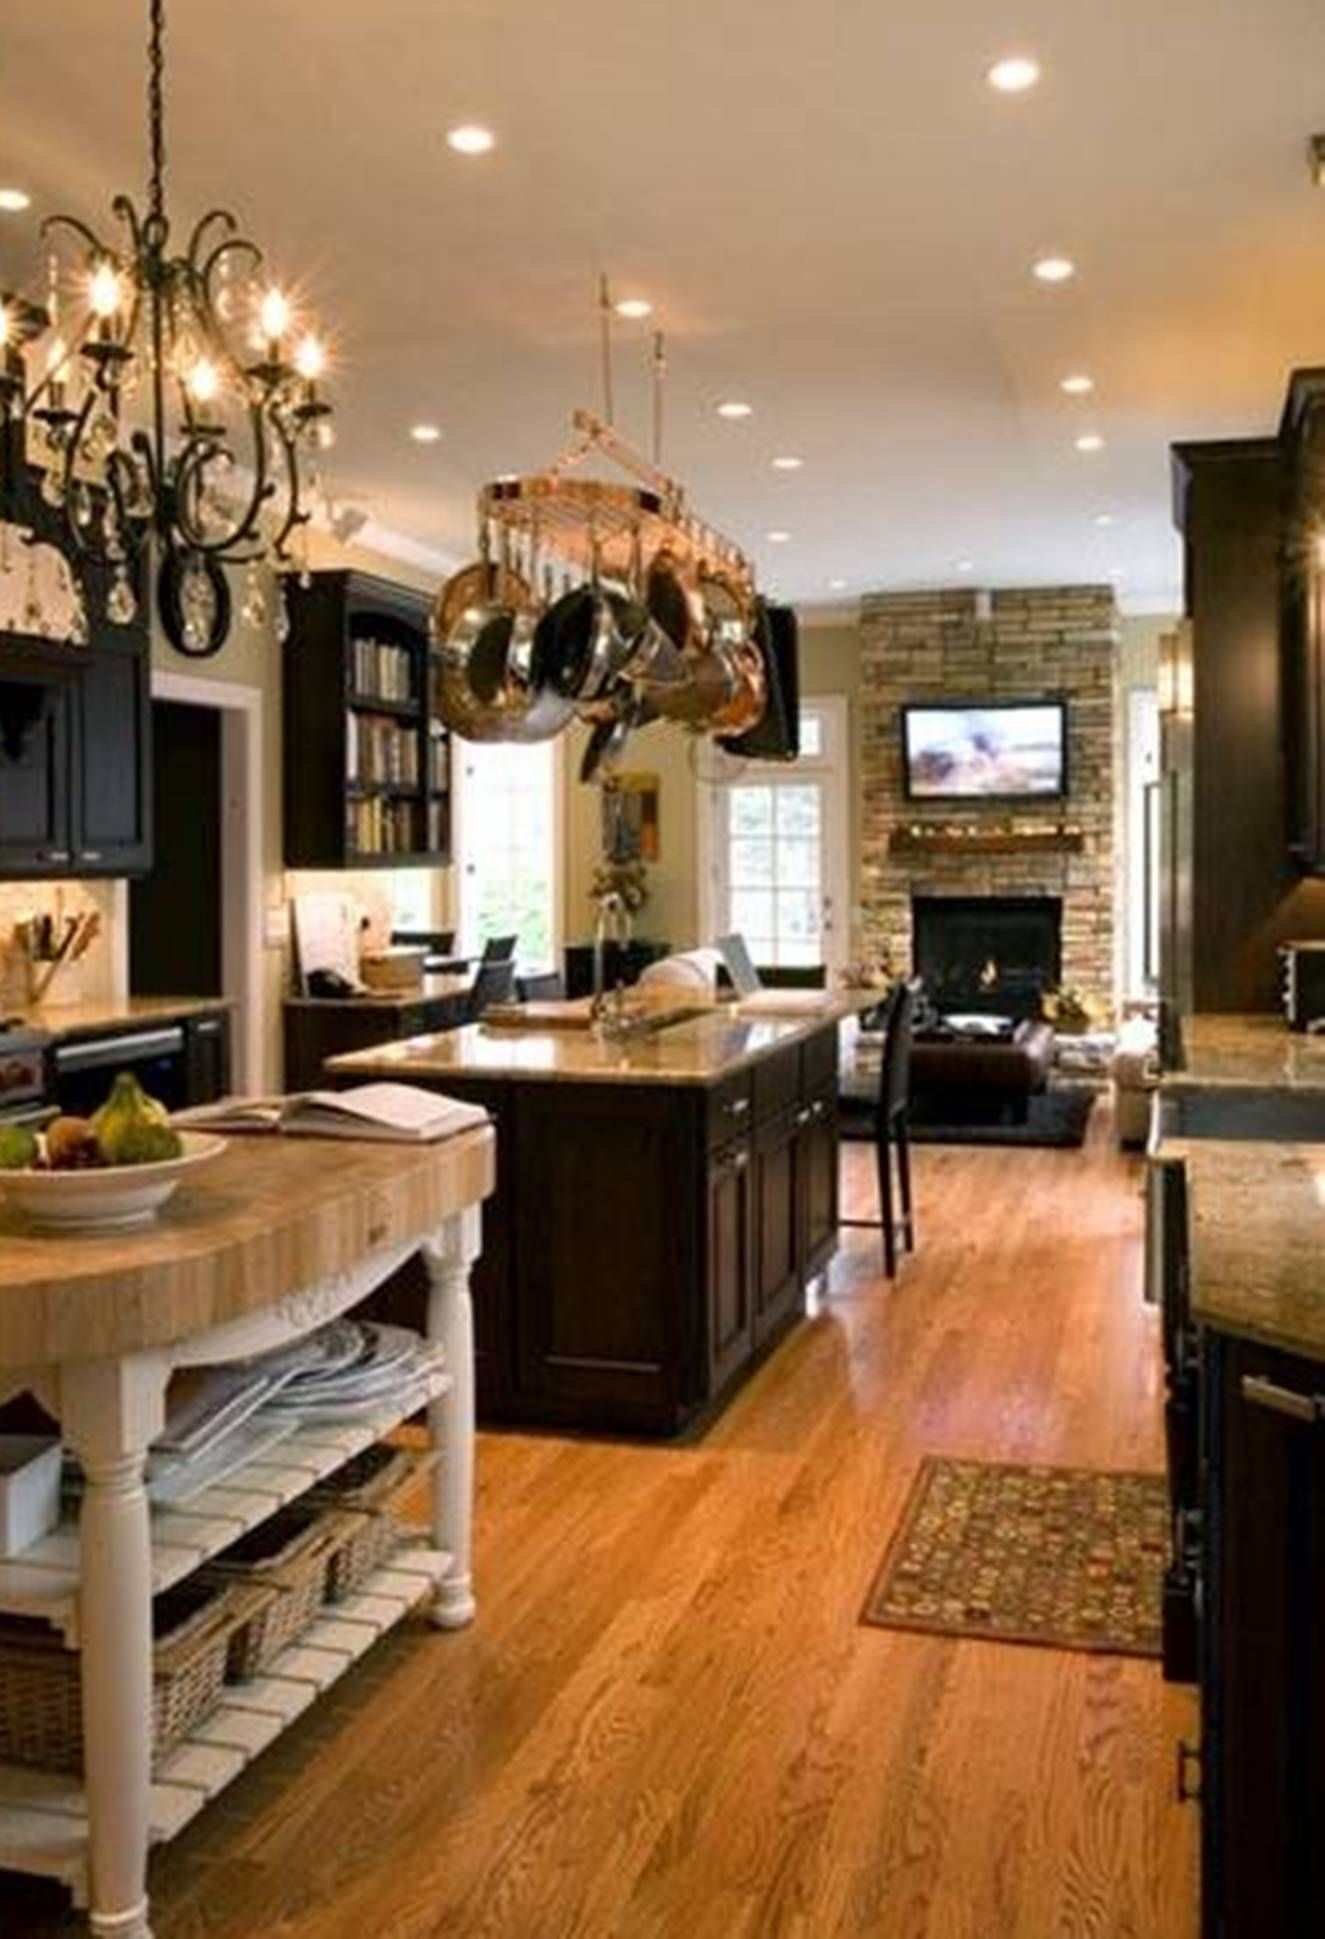 Kitchen Design With Double Island Seating Area And Open Floor Plans